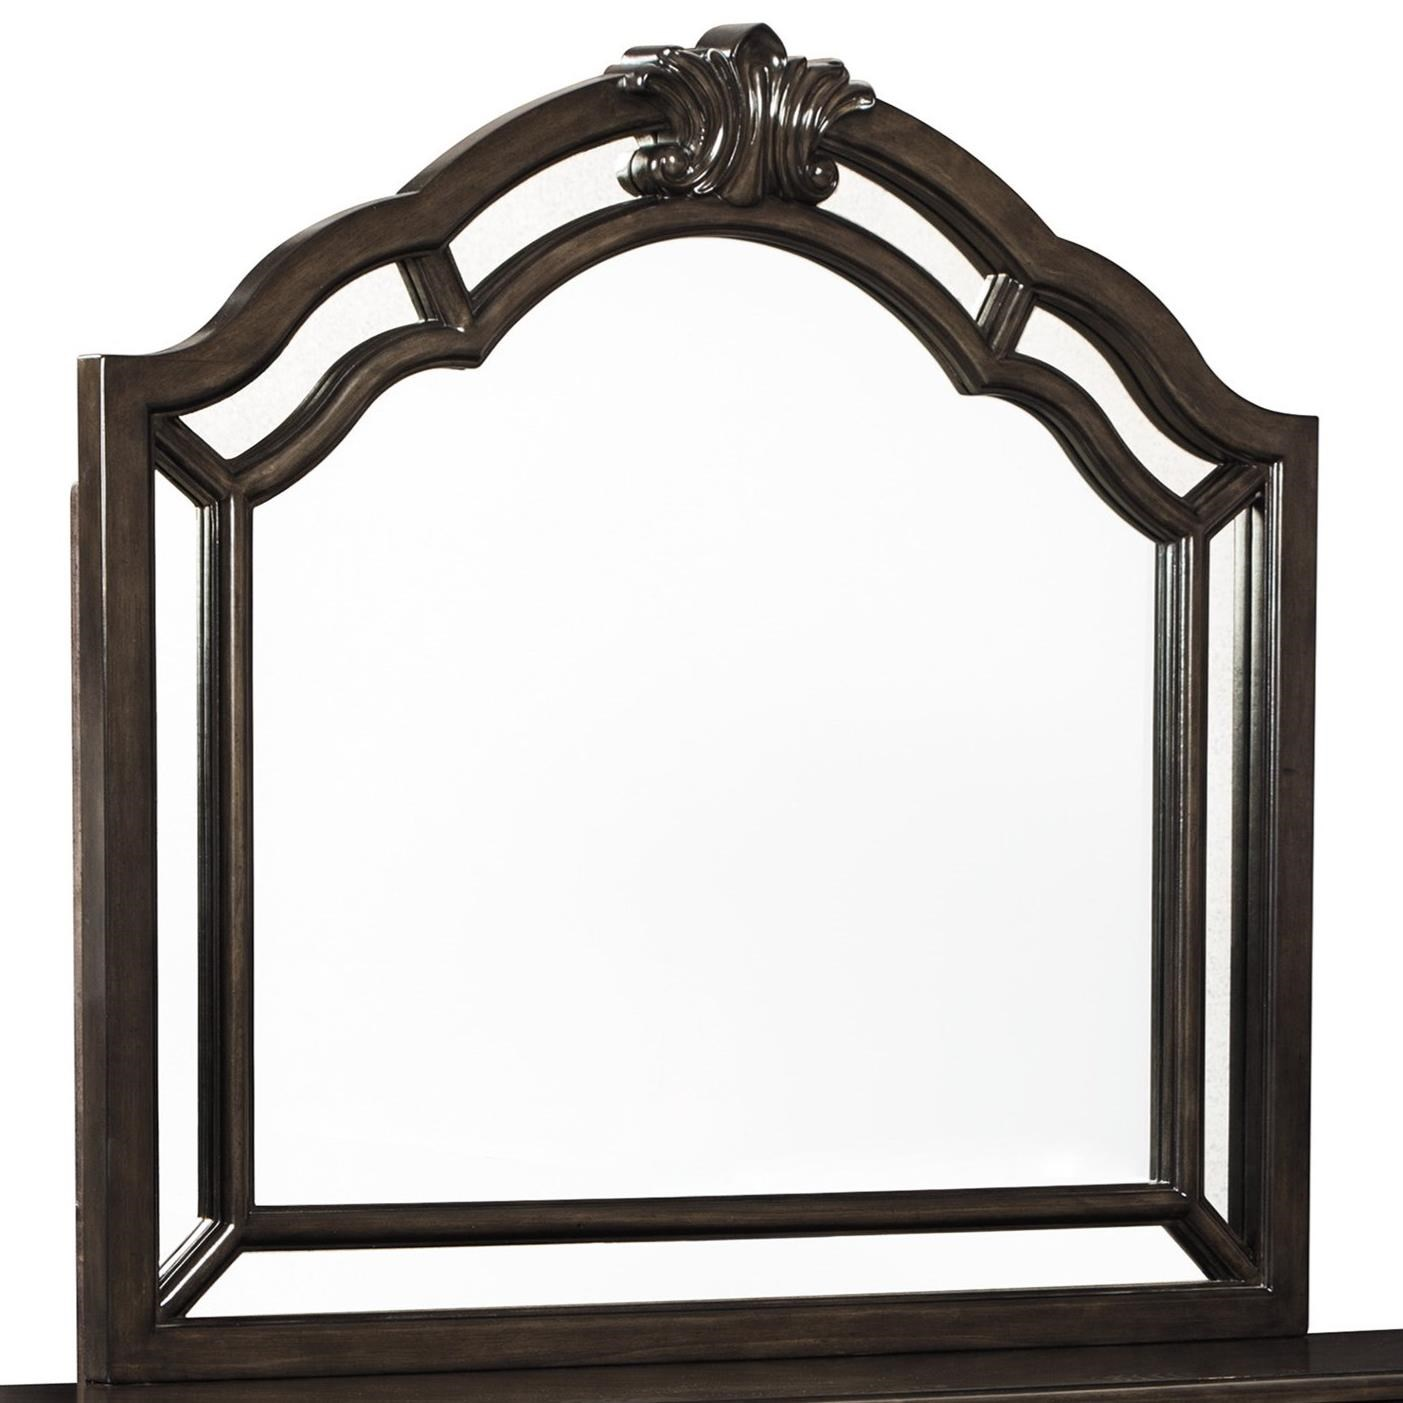 Signature Design by Ashley Quinshire Bedroom Mirror - Item Number: B728-36